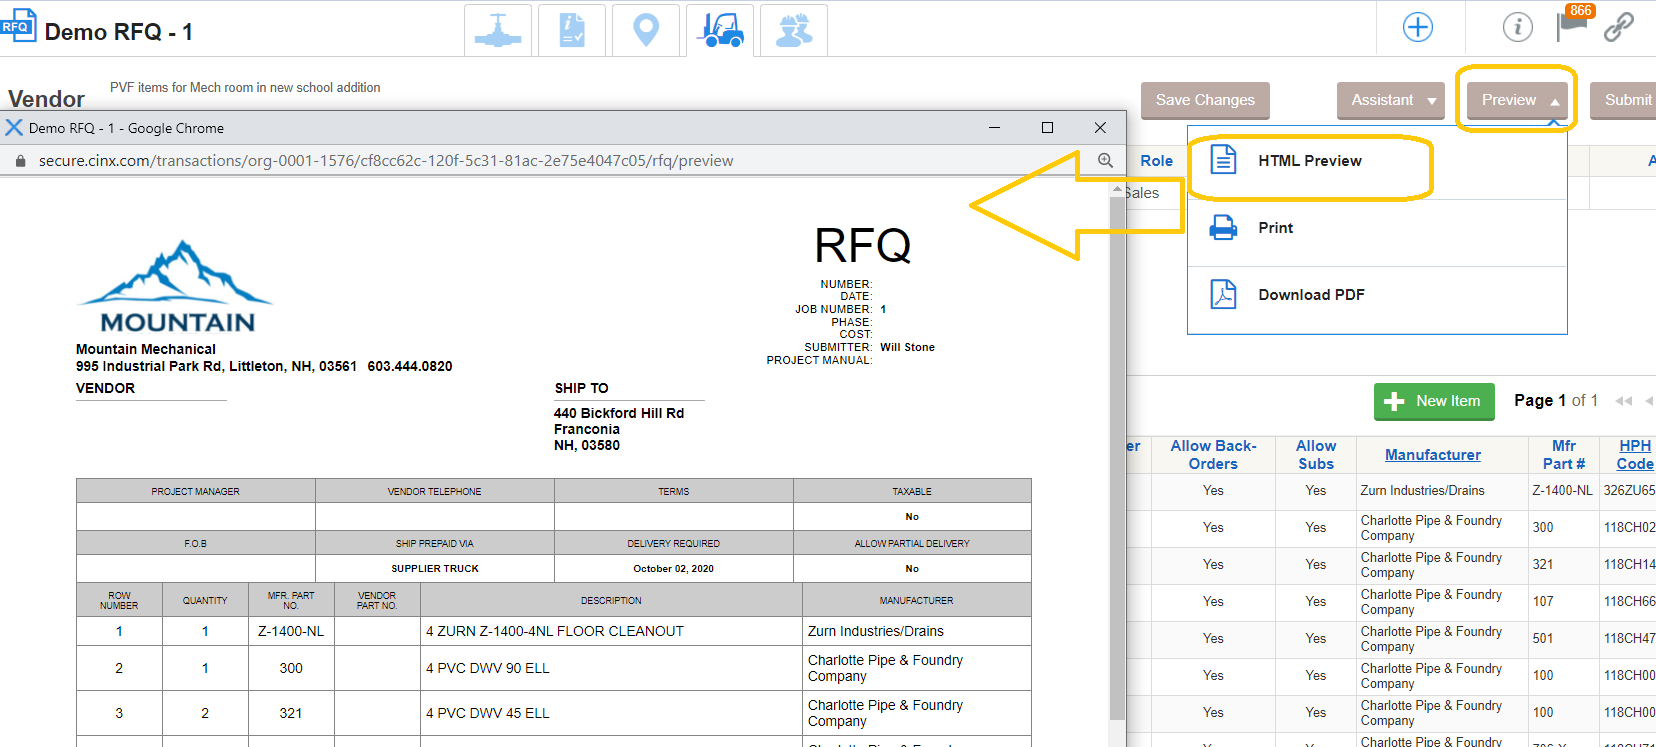 Create and Submit a Request for Quote (RFQ)